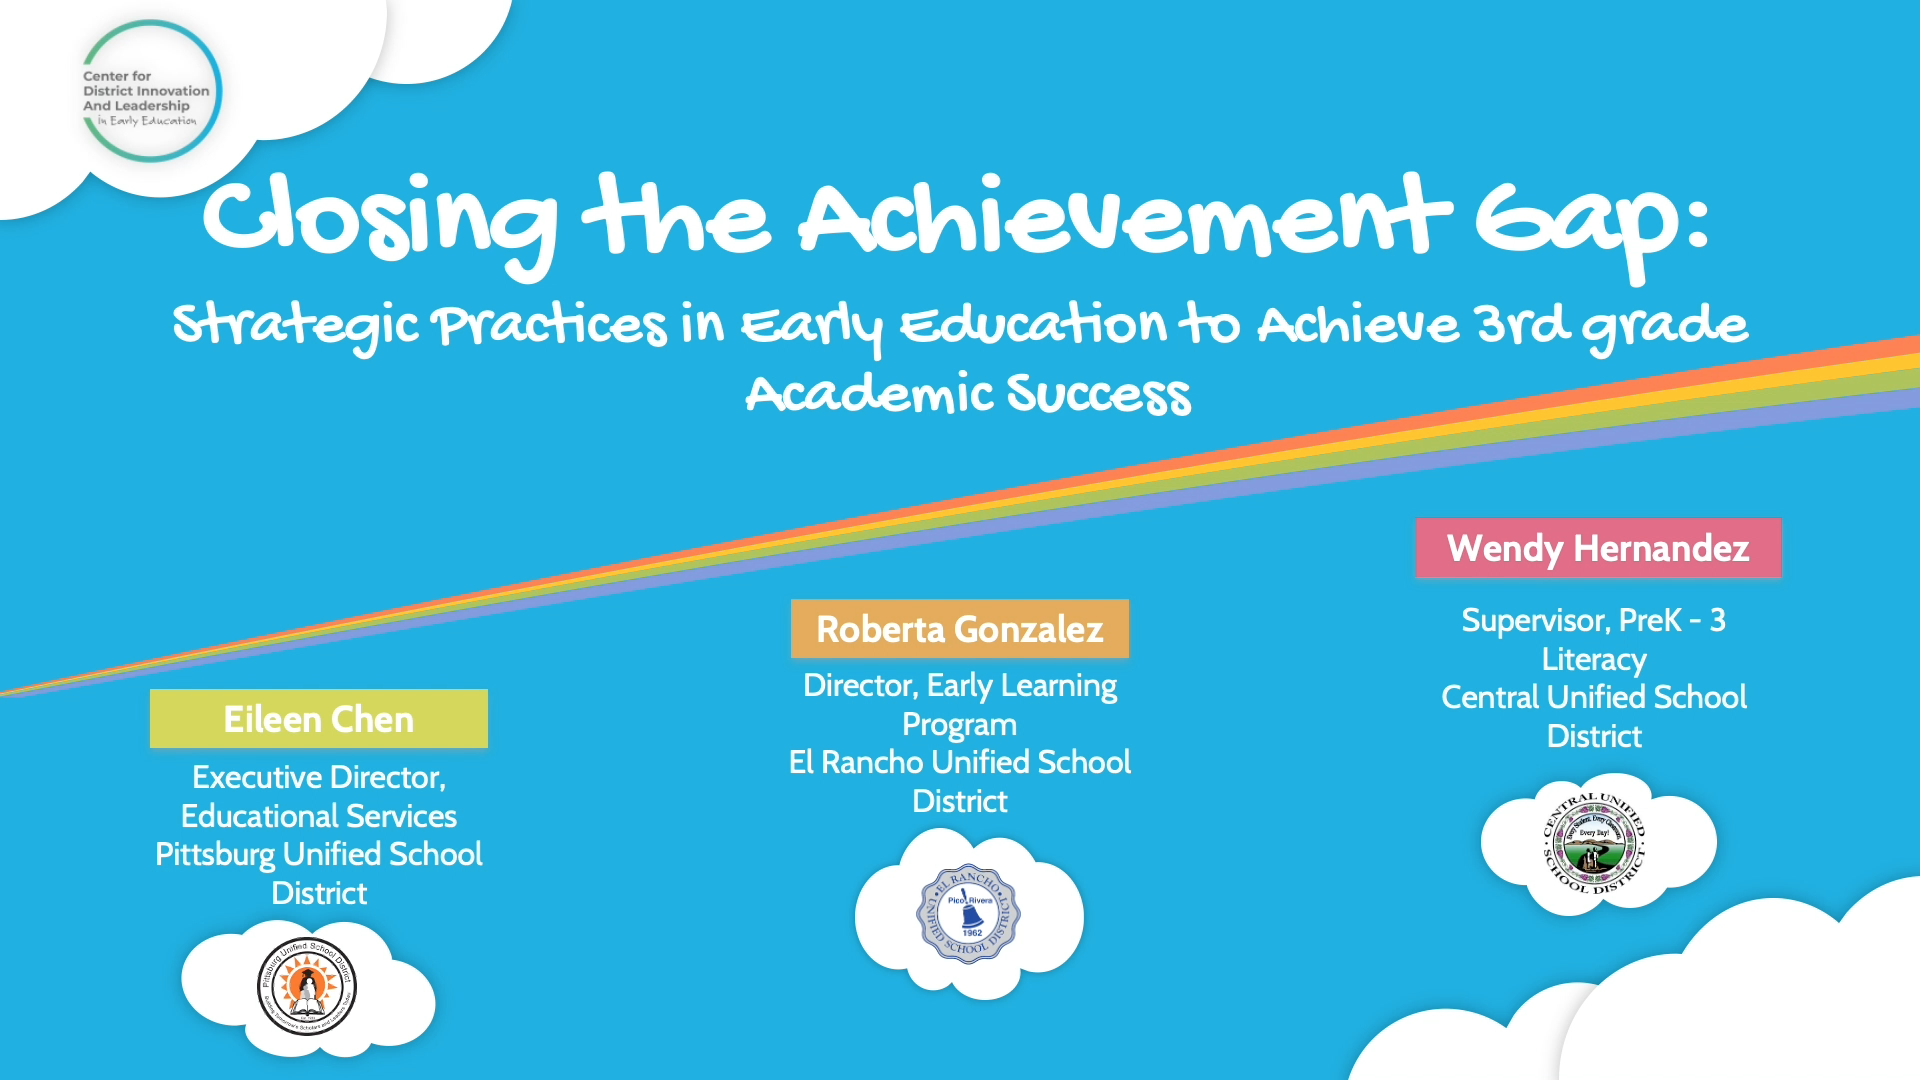 Closing the Achievement Gap: Strategic Practices in Early Education to Achieve 3rd grade Academic Success